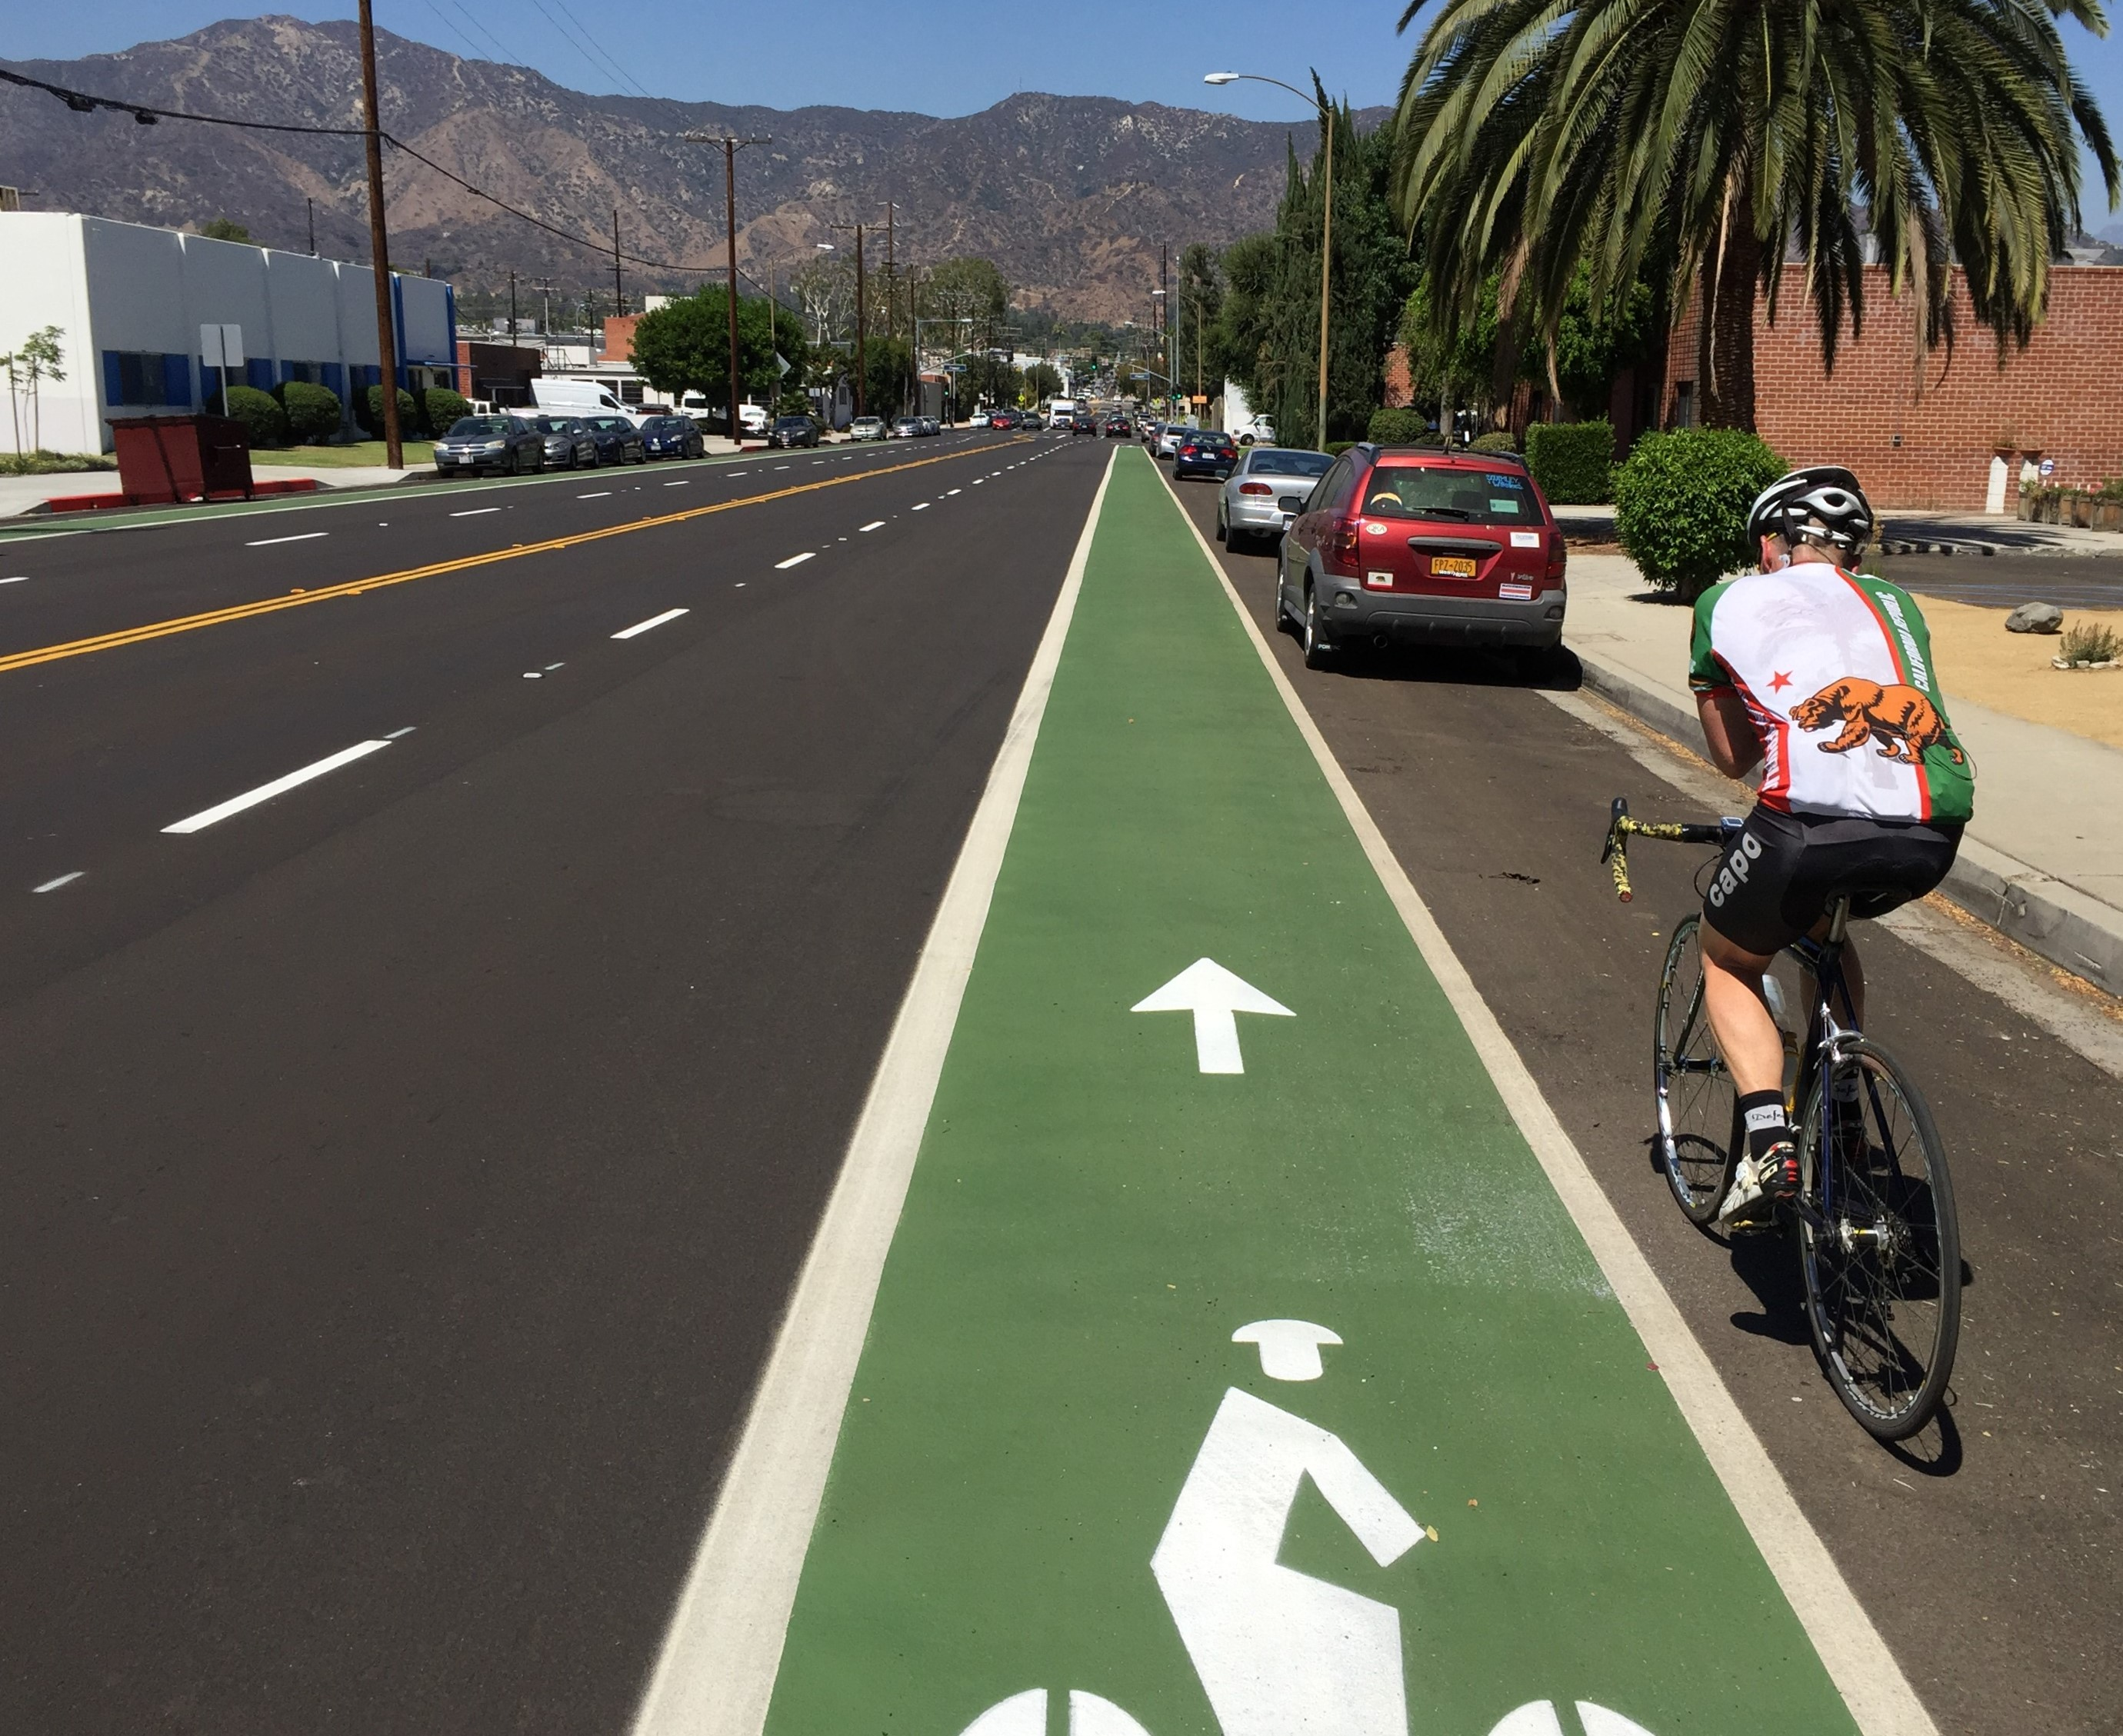 Glendale's new green bike lanes on Sonora Avenue. Photos by Joe Linton/Streetsblog L.A.